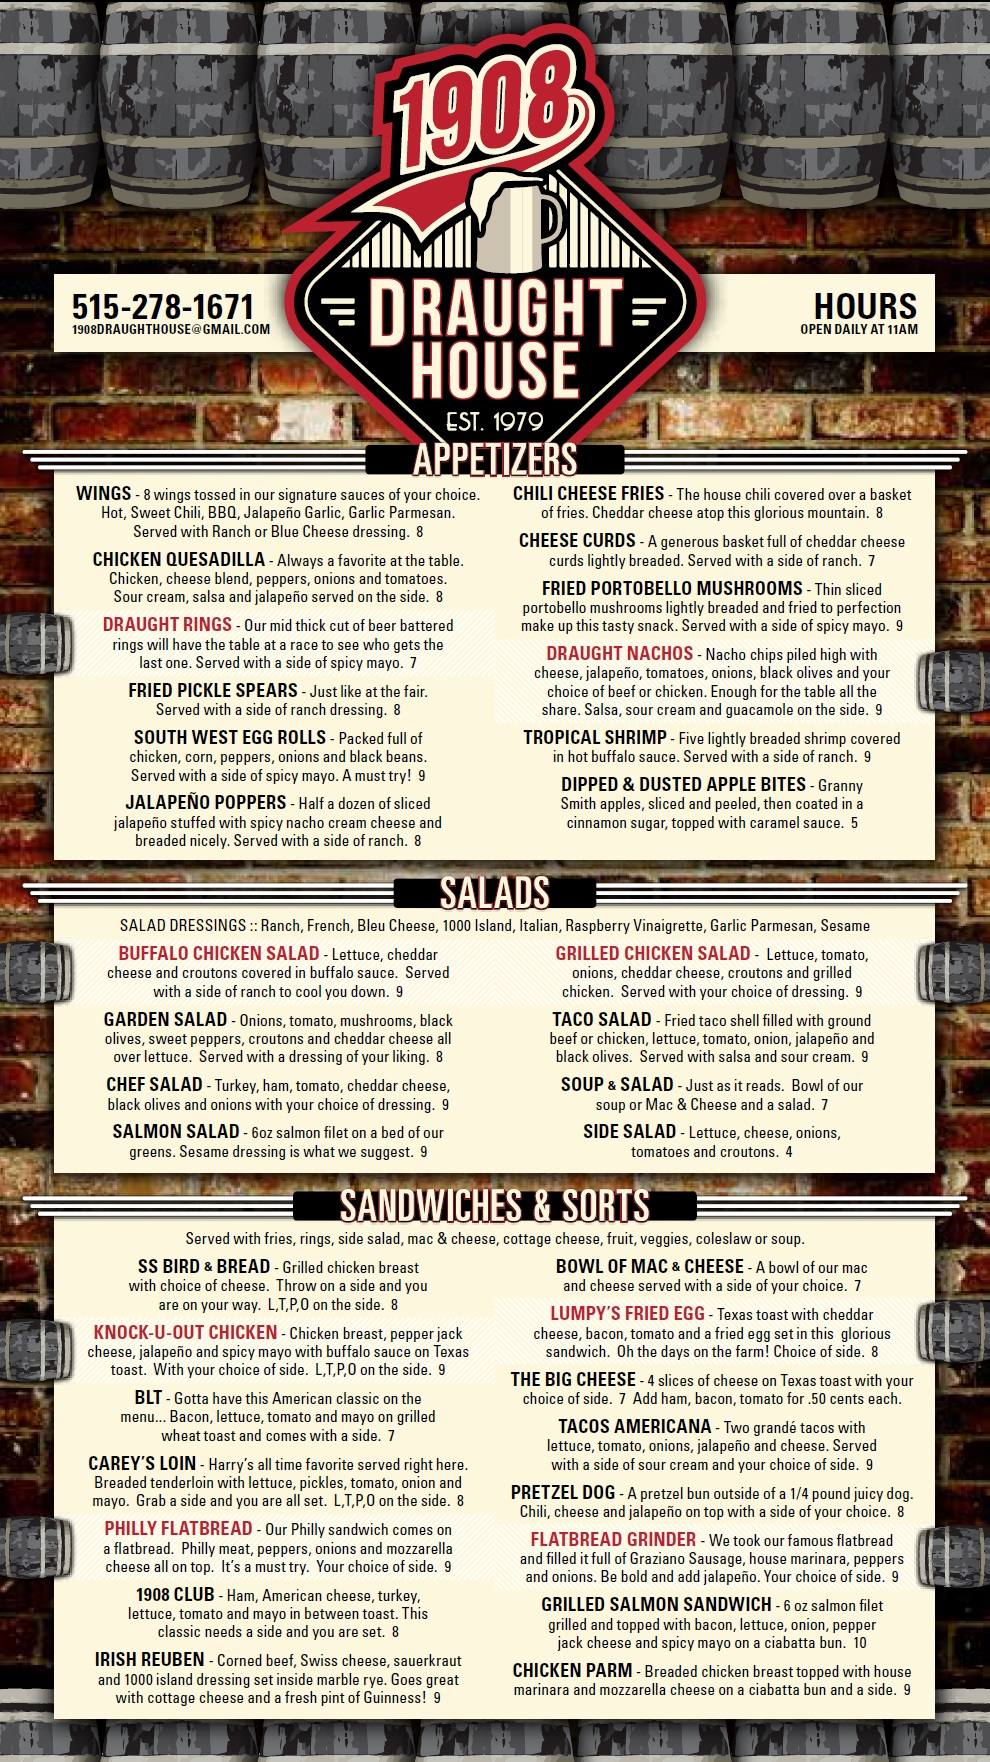 1908 Draught House Johnston Menu Page 1.jpg